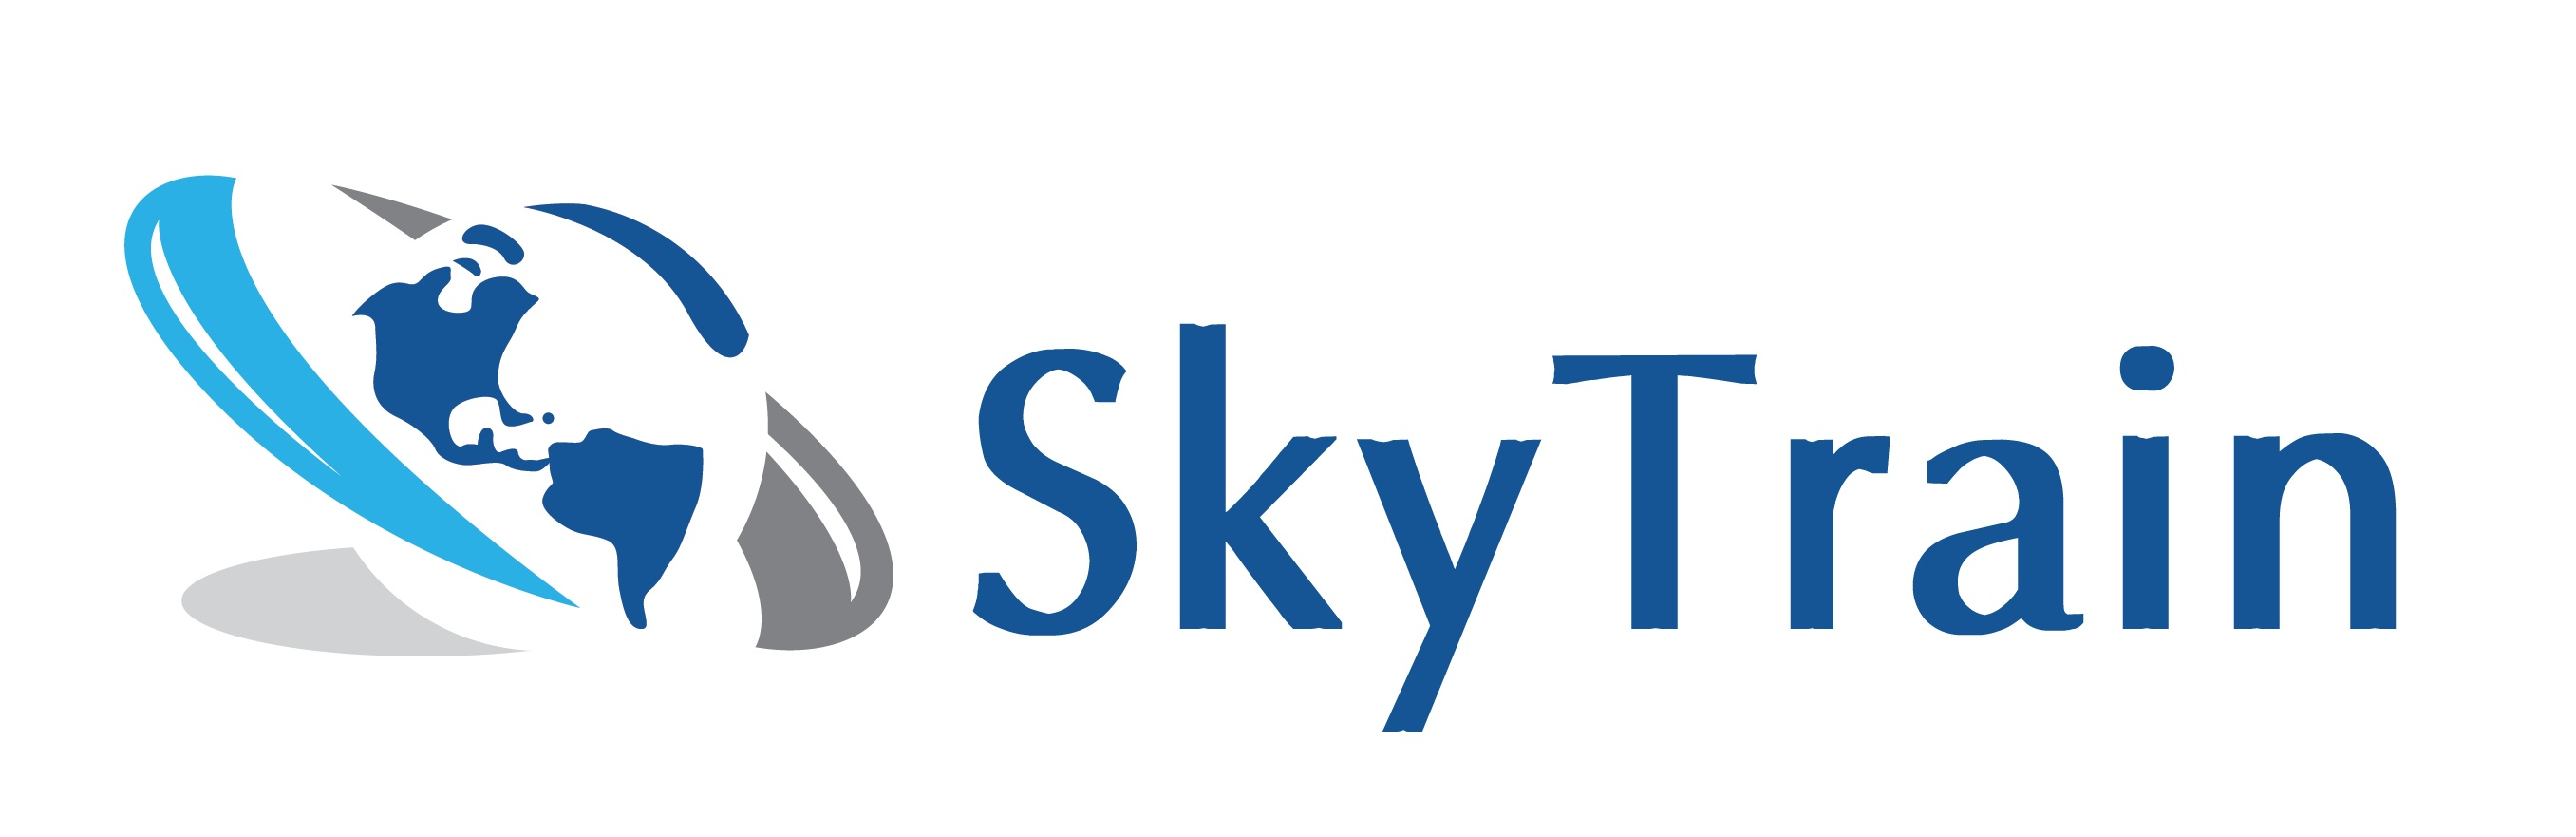 Skytrain (Pvt.) Ltd.